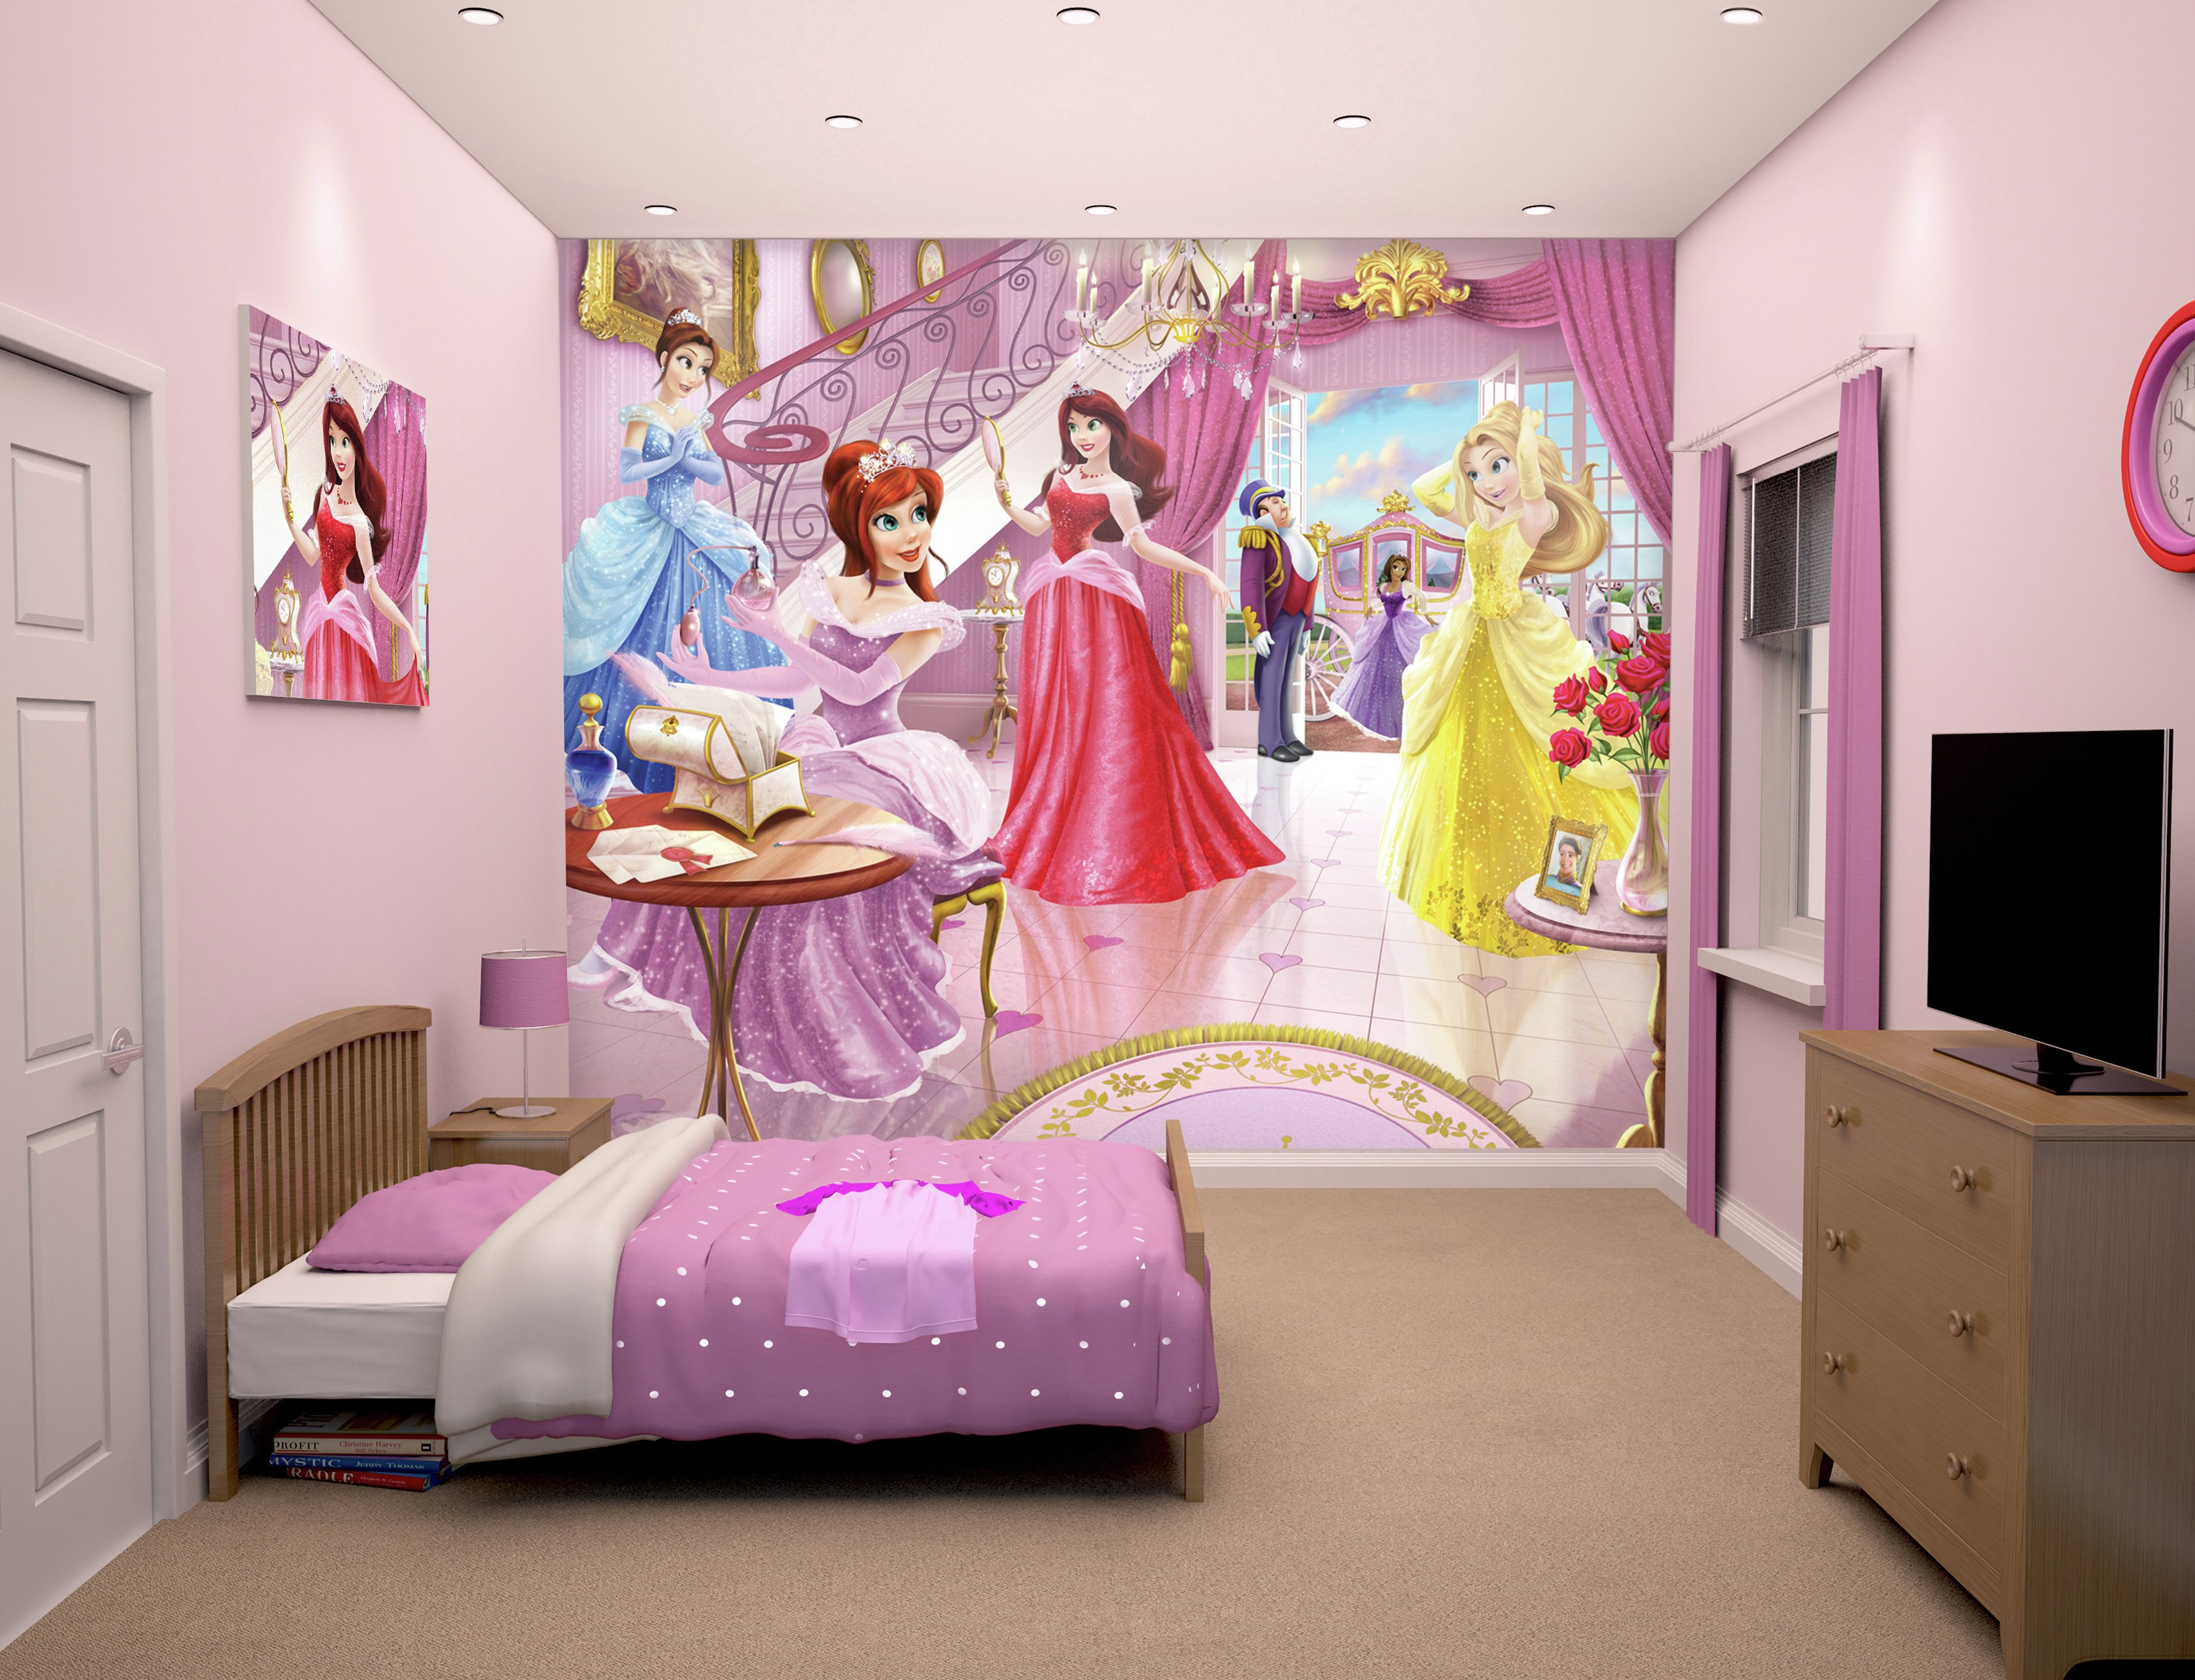 Awesome Princess Wall Mural Buy Walltastic Fairy Princess Wall Mural Kit At  Argos.co.uk Part 28